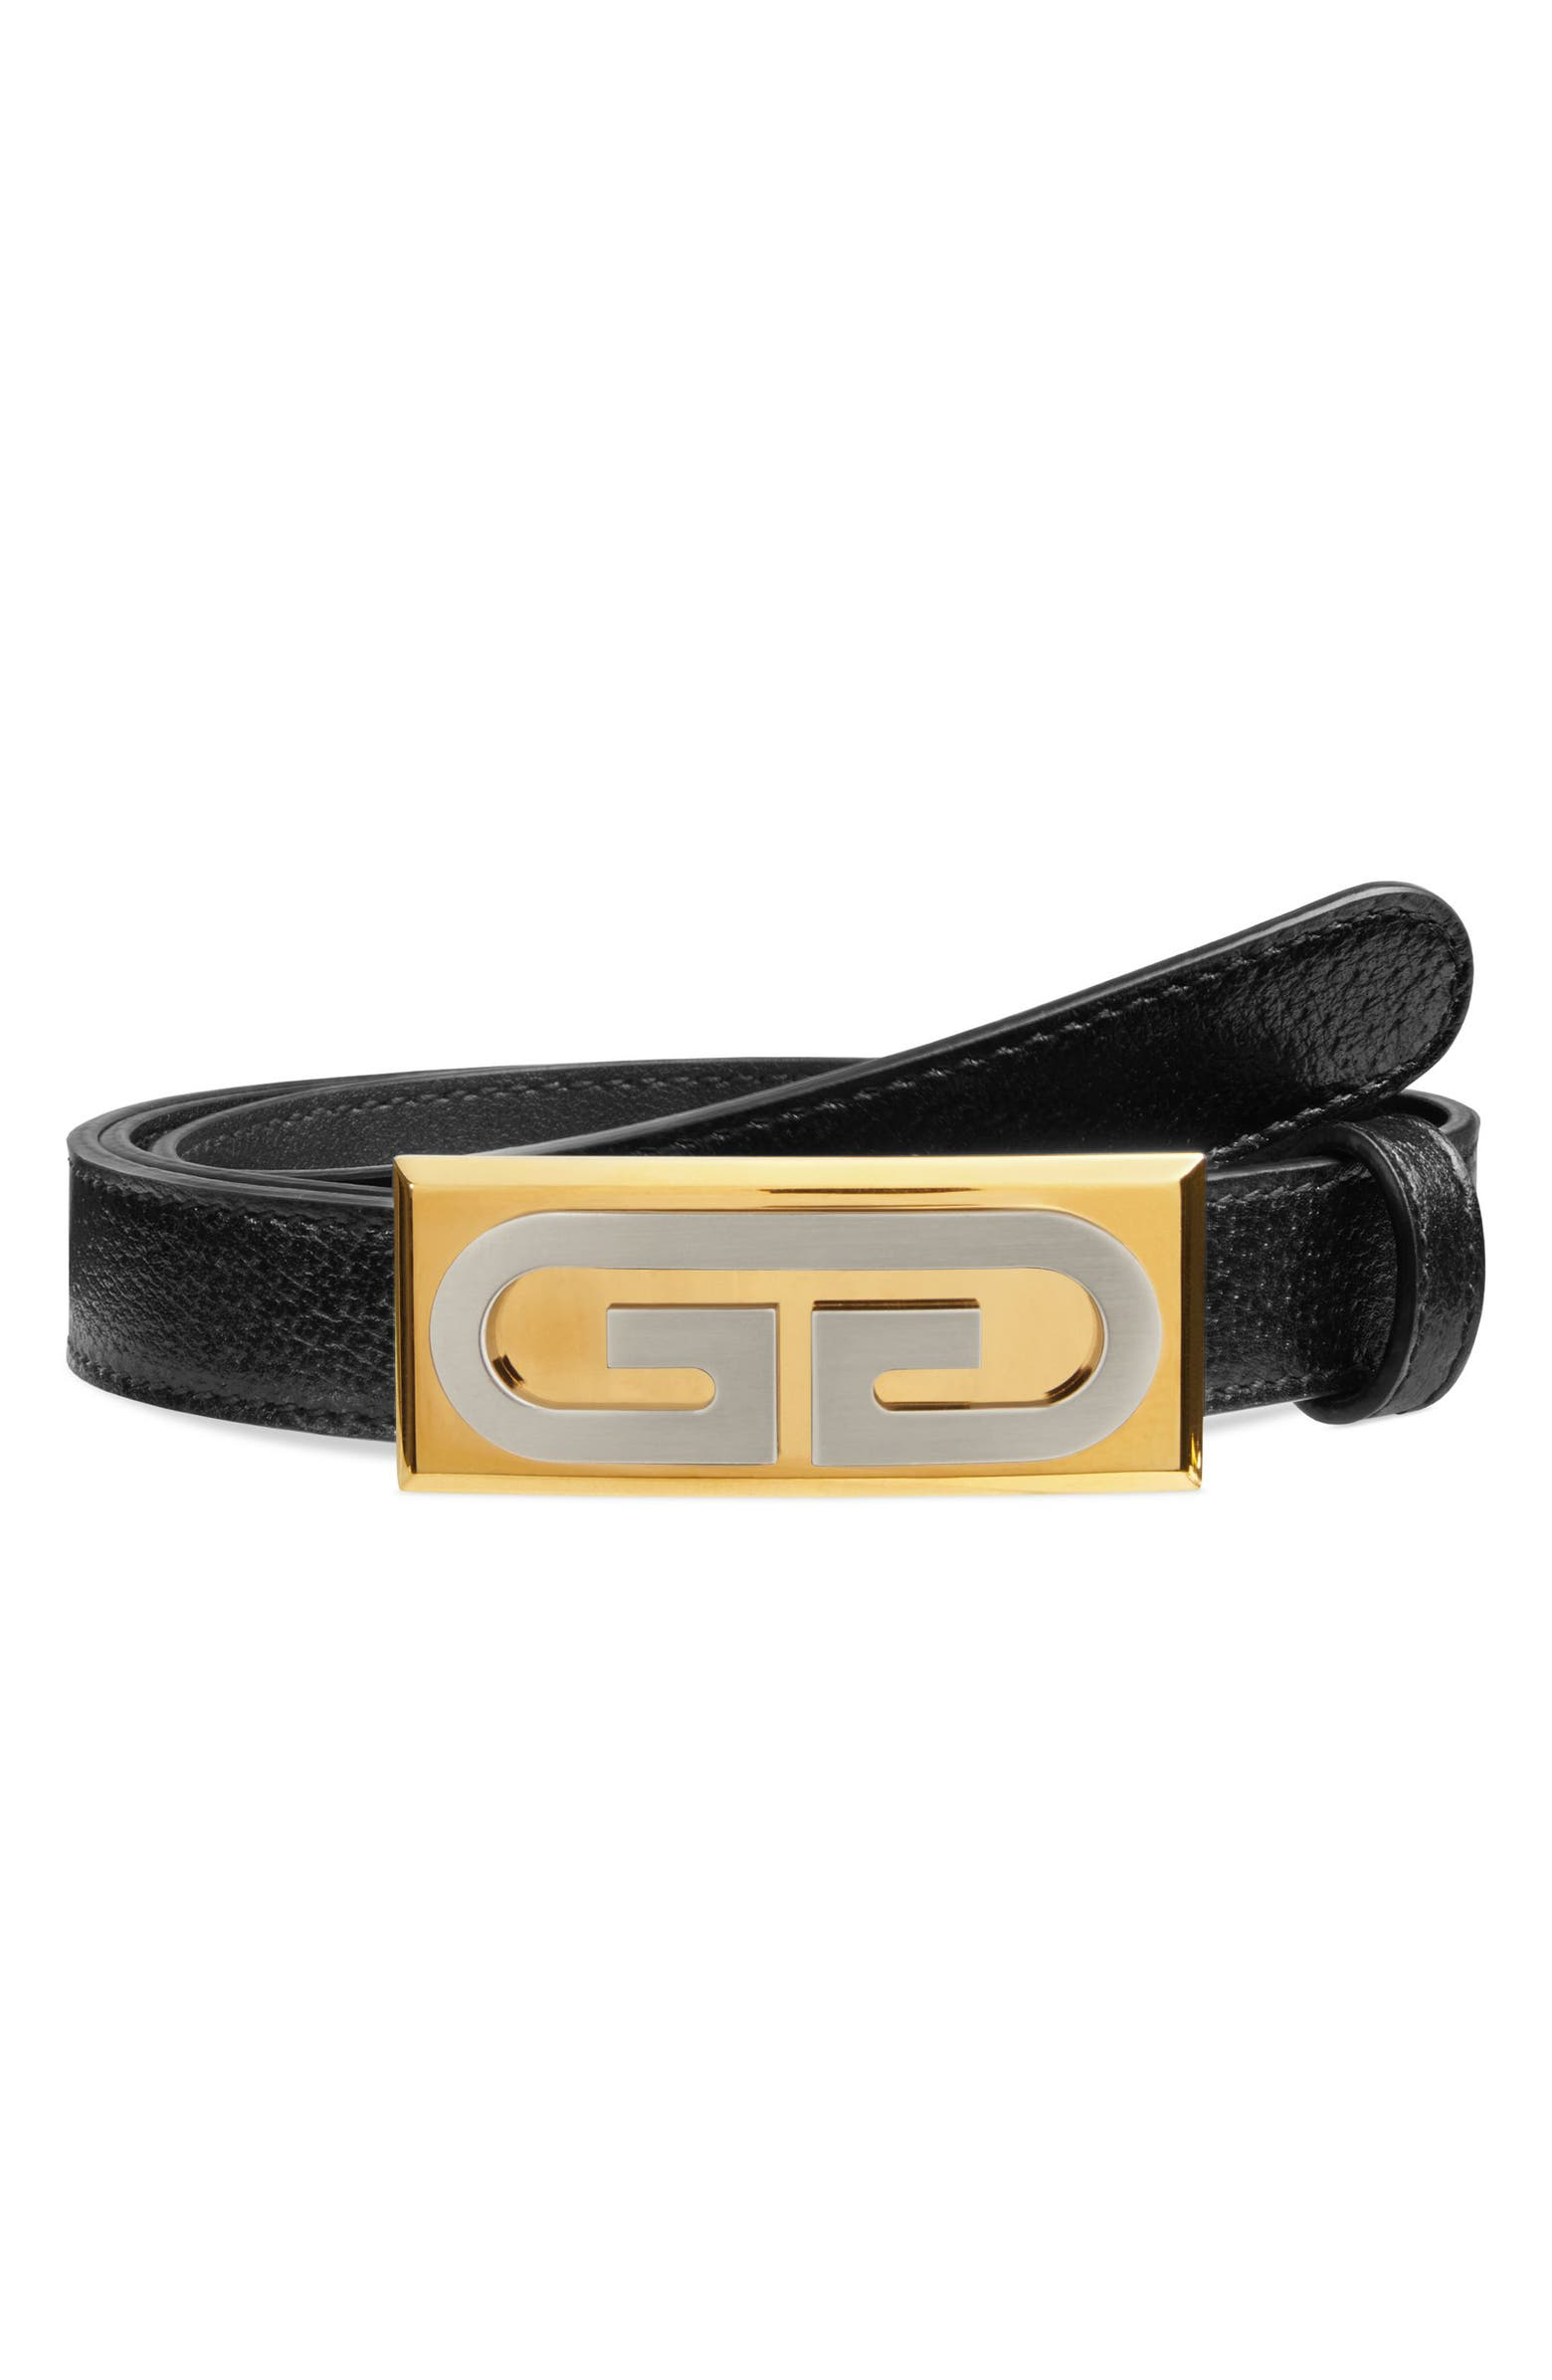 New GG Runway Leather Belt GUCCI